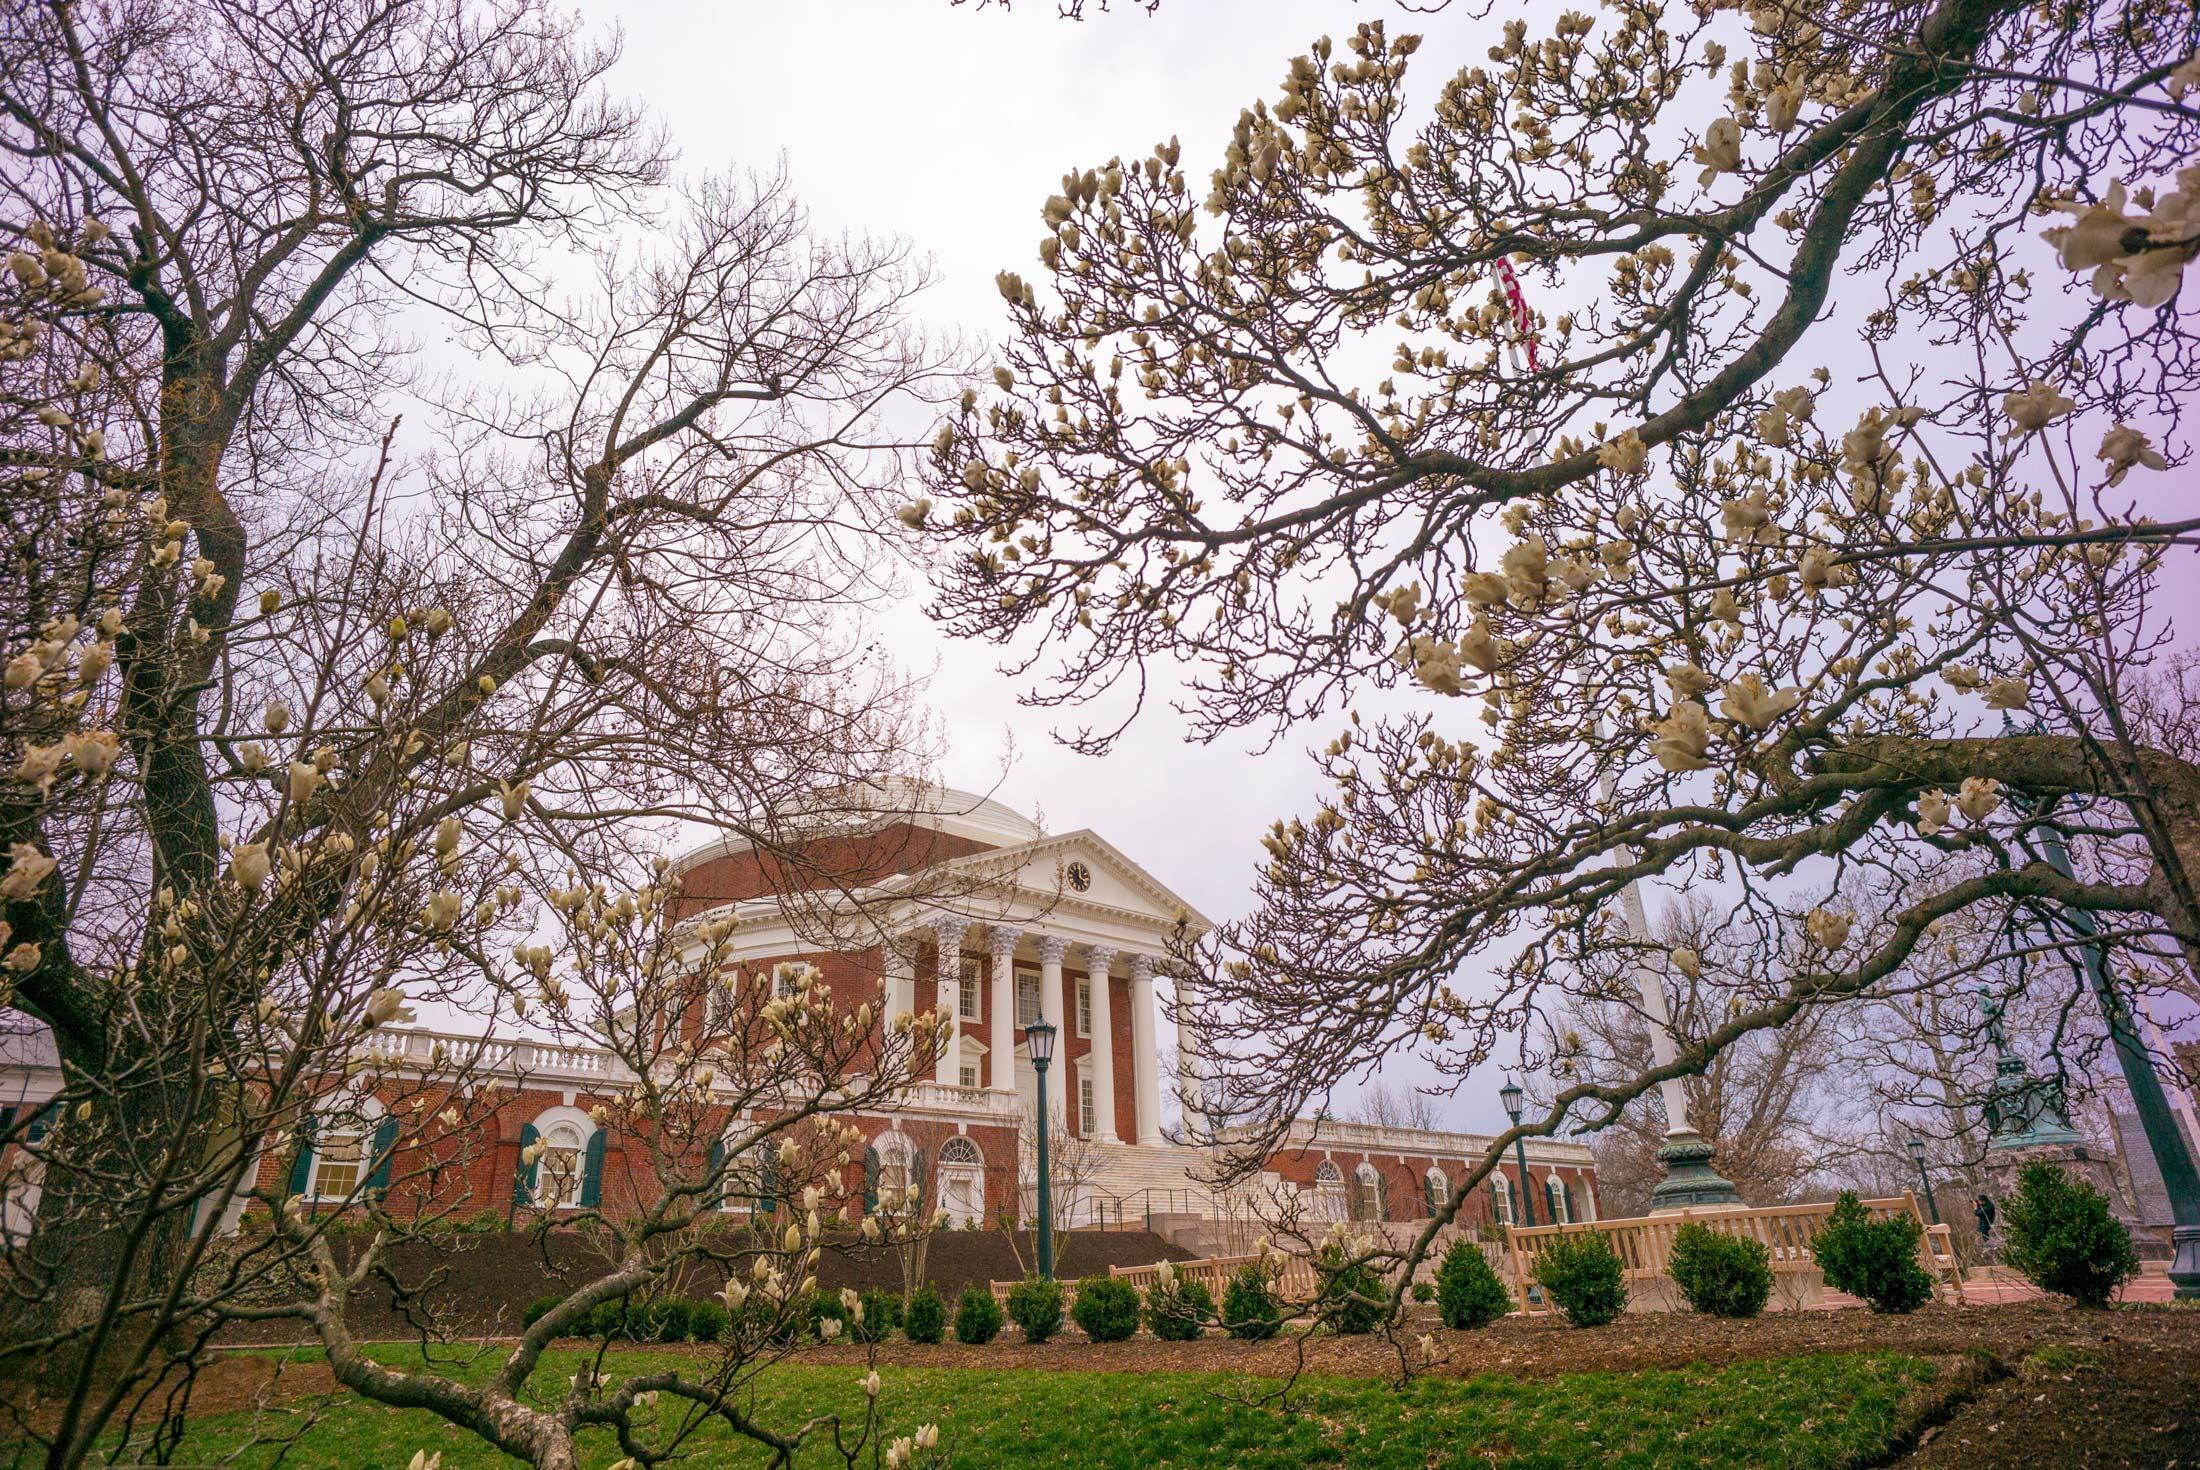 Accolades: Jefferson Scholars Foundation Awards $25,000 to Five Faculty Members